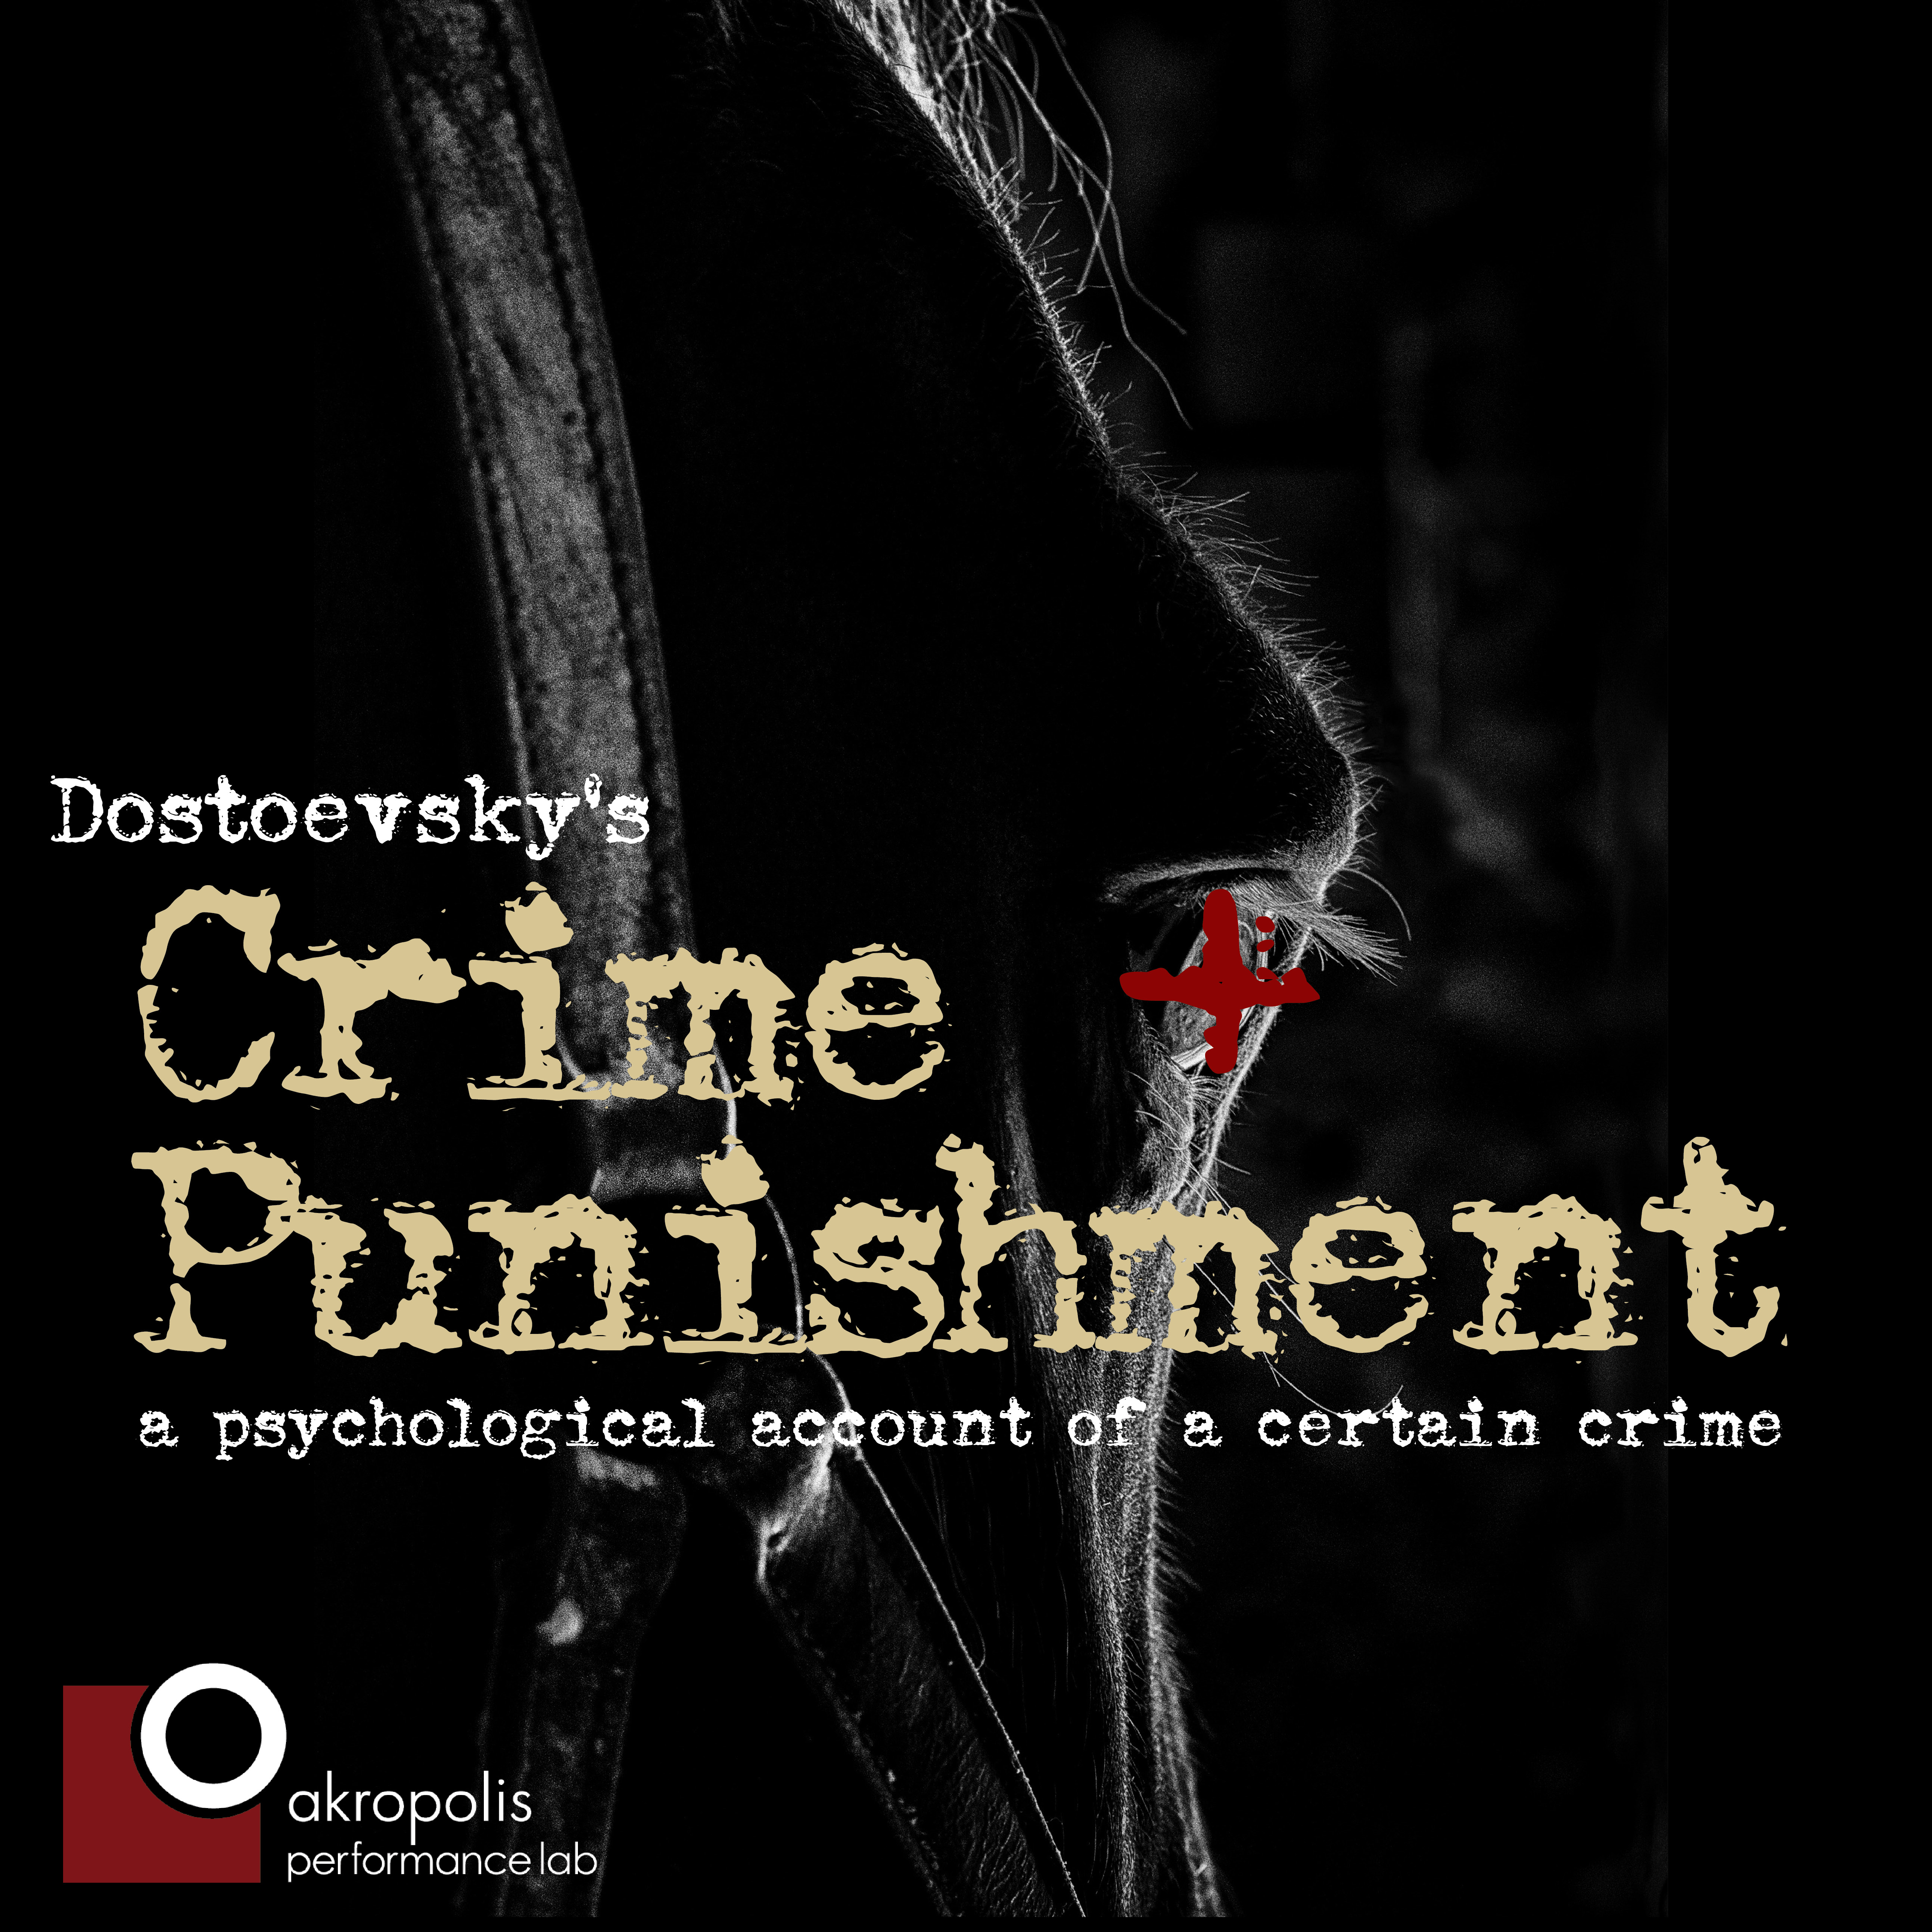 criminal punishment A new translation captures the painful backdrop of dostoyevsky's classic: the poverty, crime, and violence that shaped much of everyday life in 19th-century st petersburg.